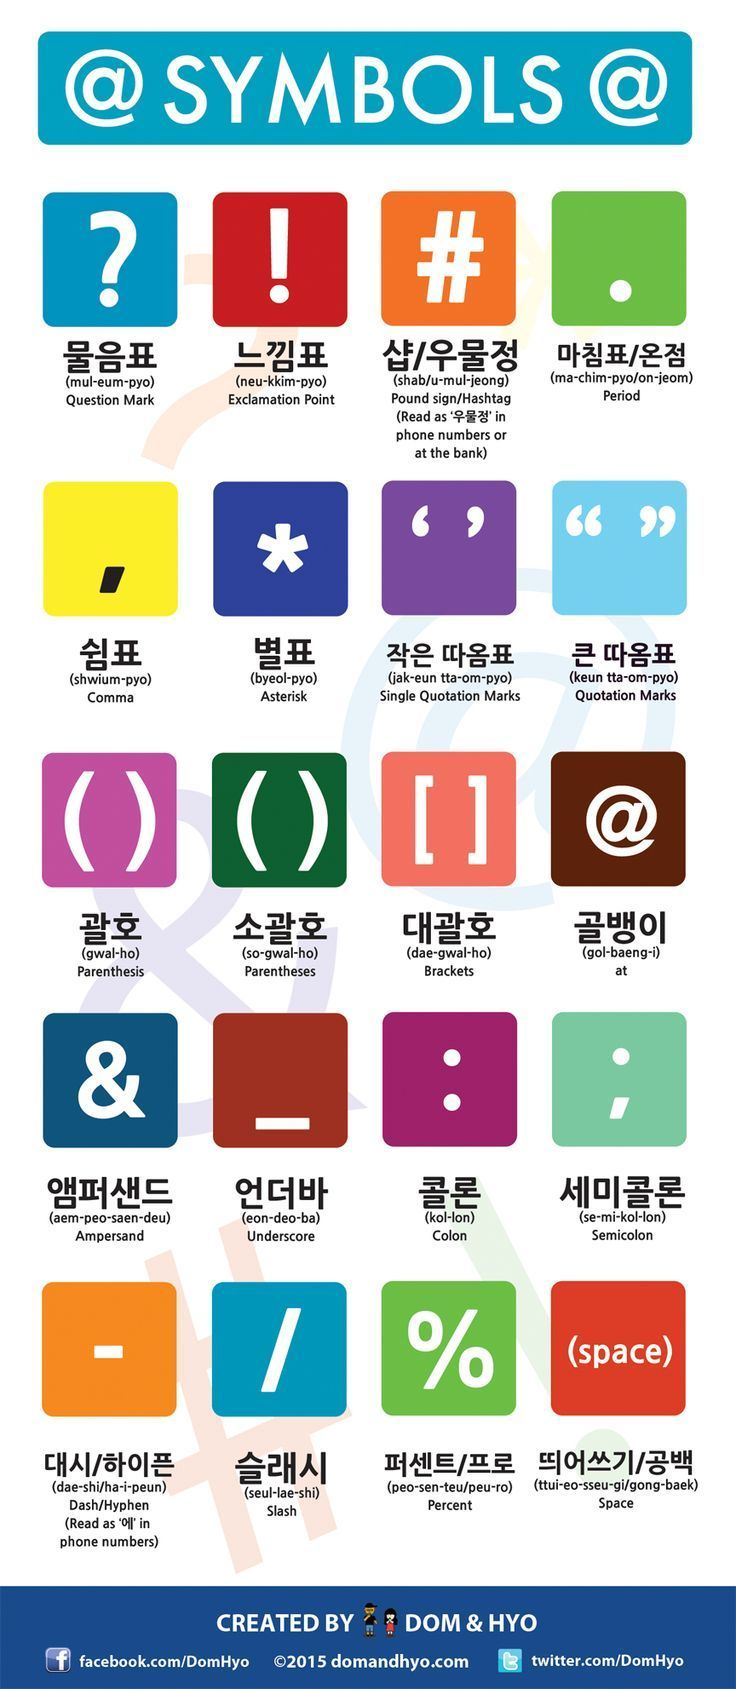 Learn Korean symbols with this helpful infographic from Dom & Hyo  #LearnKoreanFast #StudyKorean #KoreanLanguage